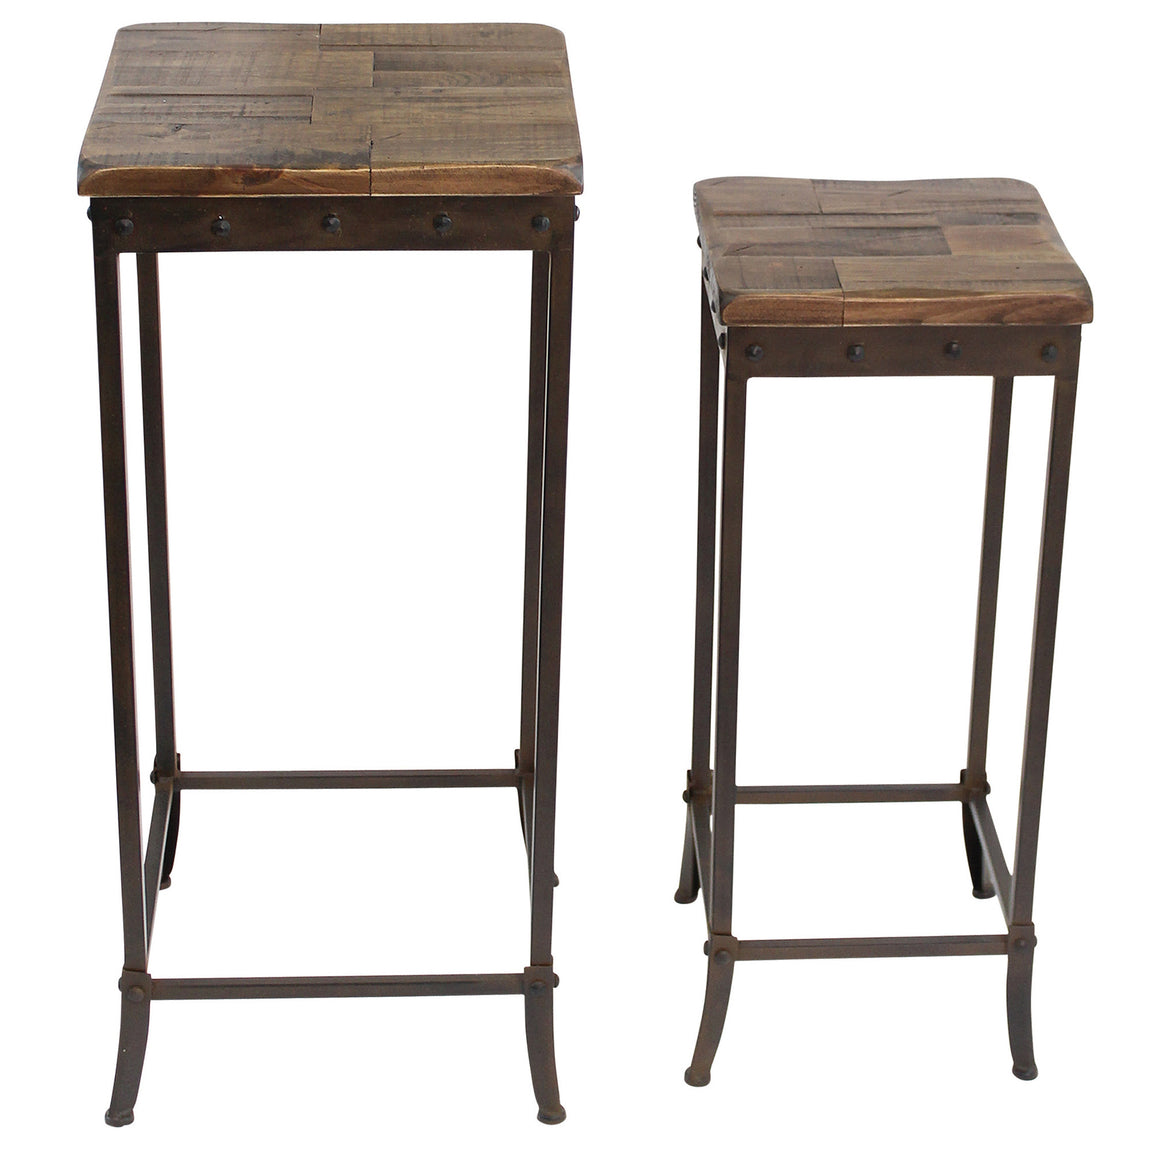 Trenton Distressed Pine 2PC Side Table